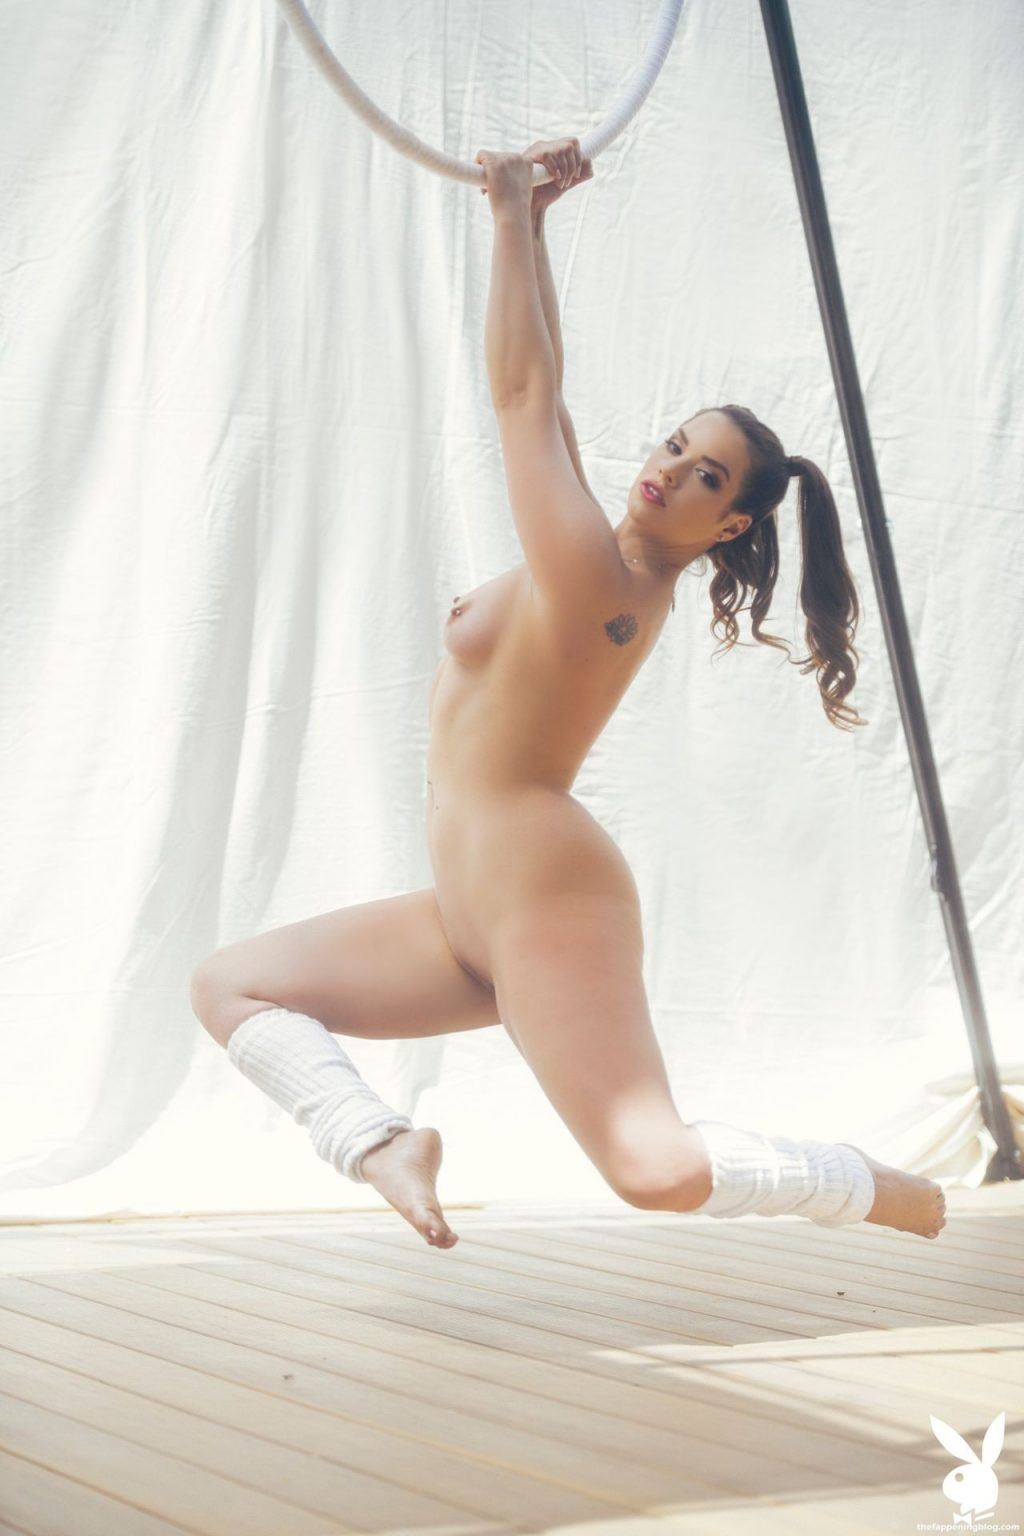 Daisy Marchesi Nude & Sexy – In the Loop (33 Photos + Video)